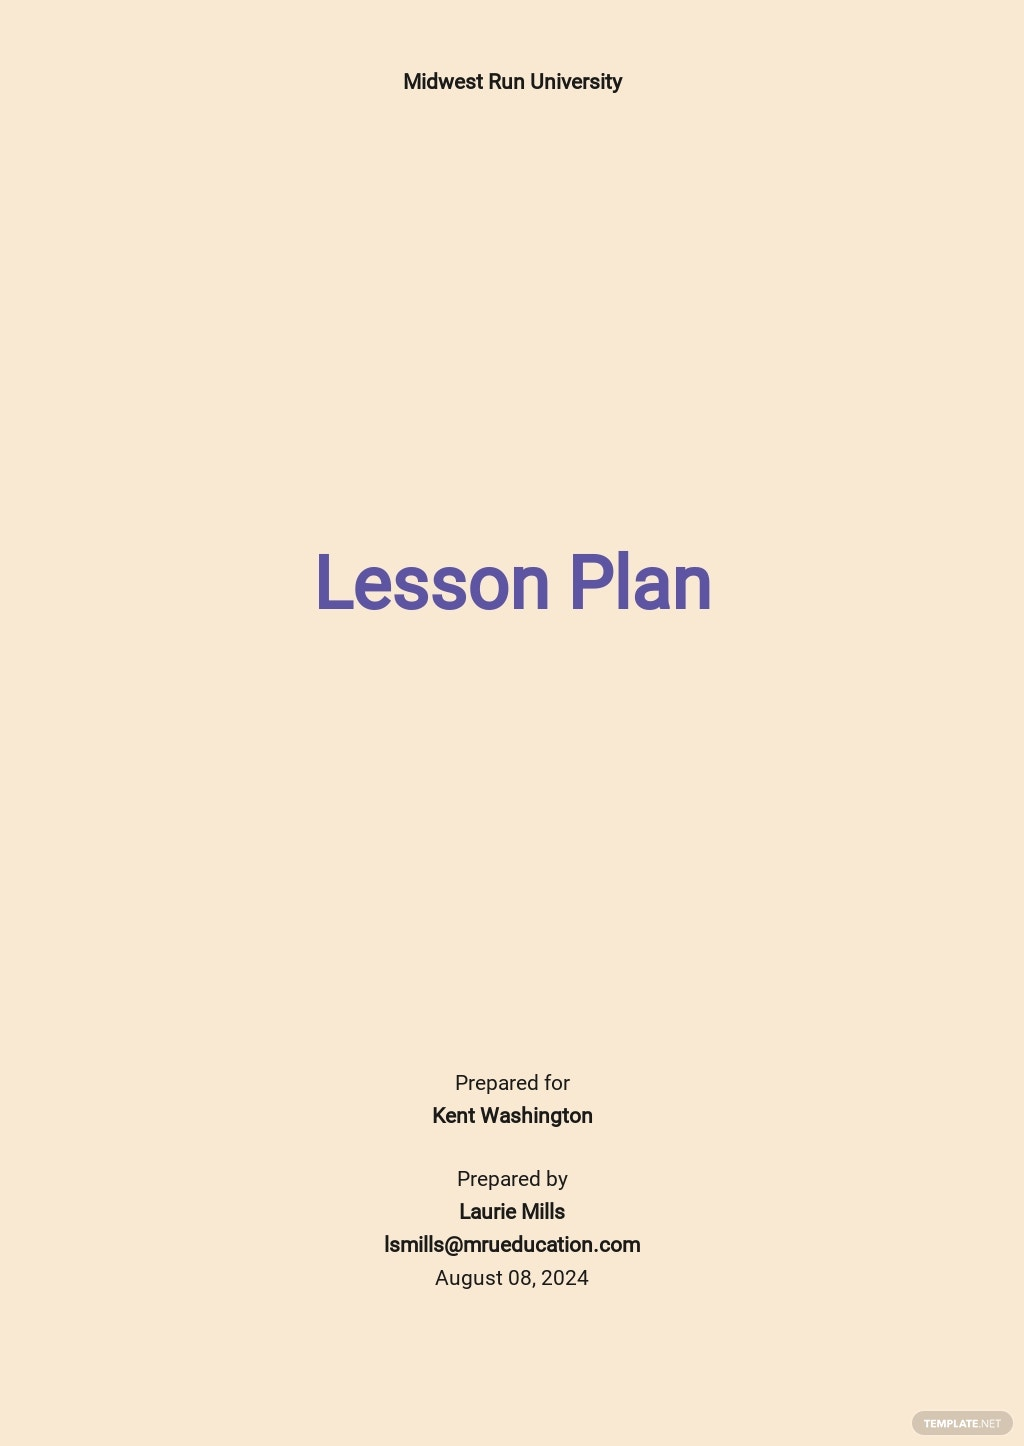 Daily Lesson Plan Template.jpe